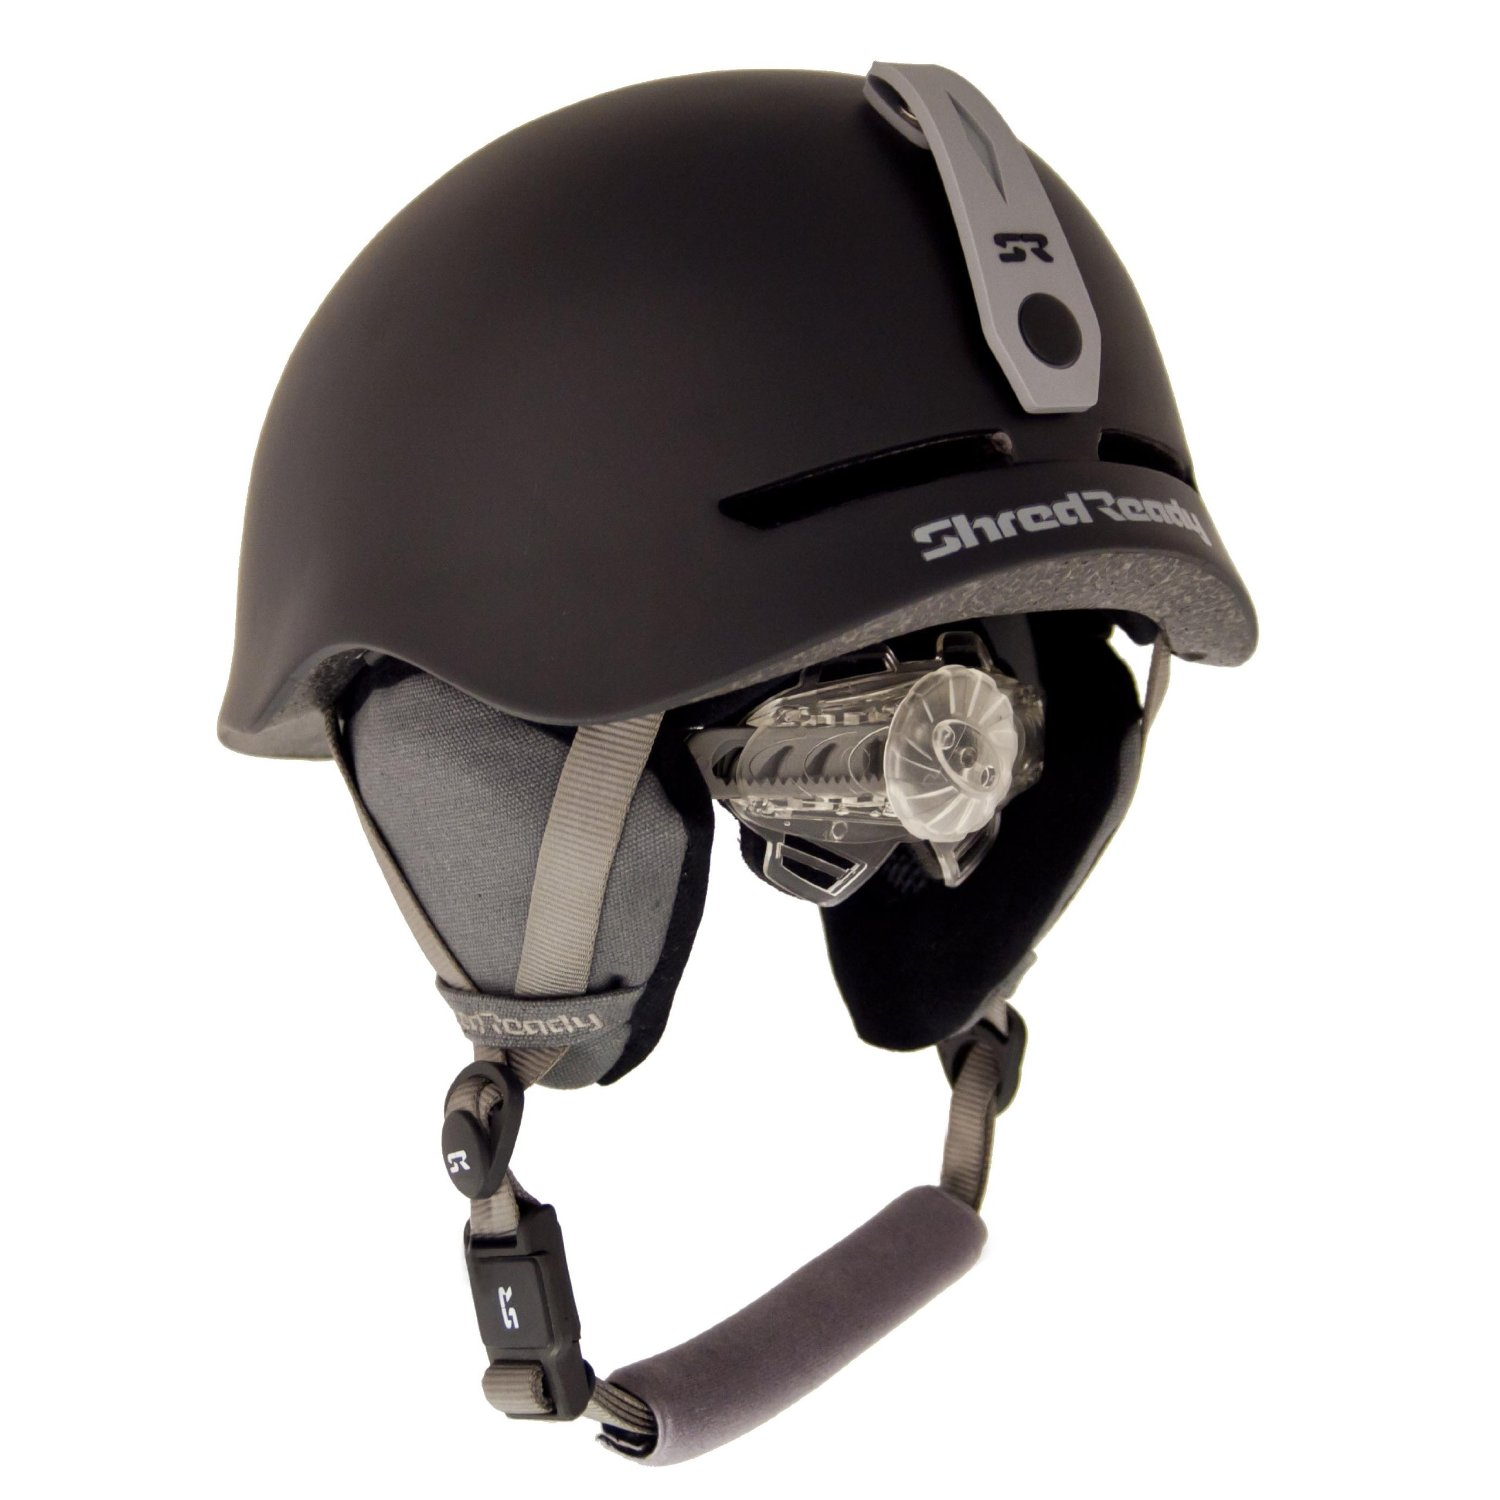 Black Shred Ready Bicycle Helmets